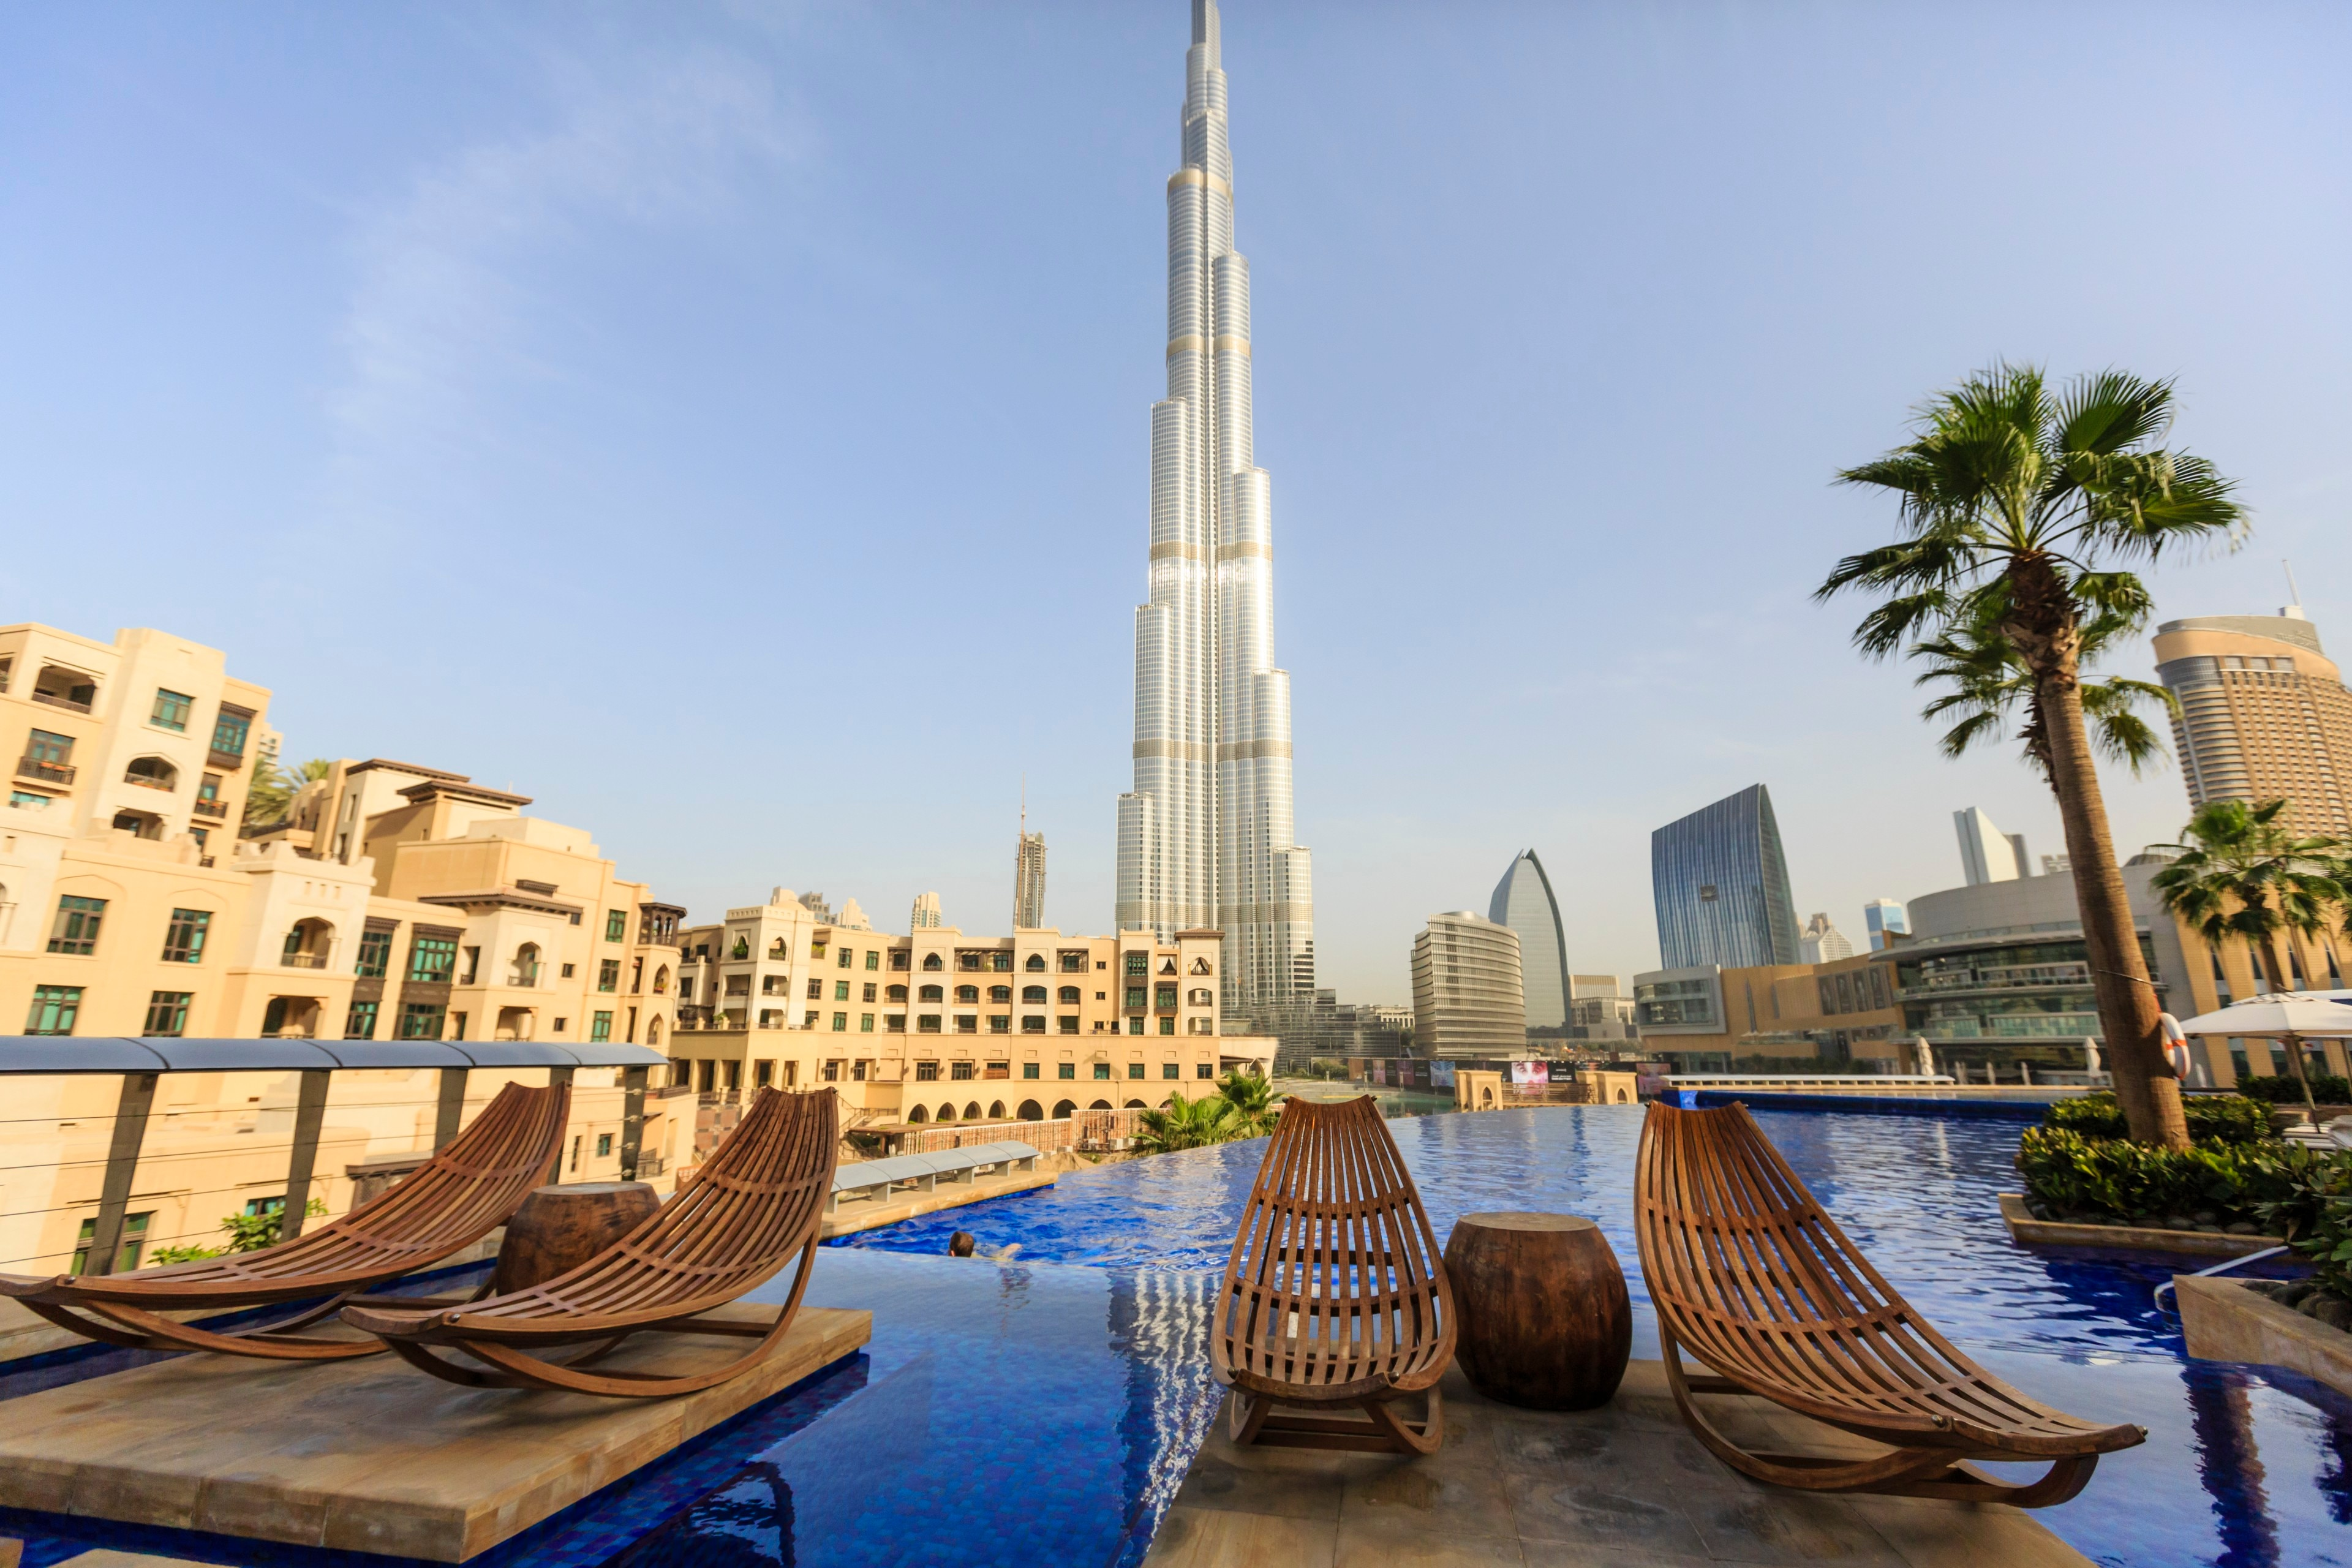 holiday in dubai Looking for the best deal on your dubai holiday compare prices for dubai holidays with popular holiday providers and book today with travelsupermarket.